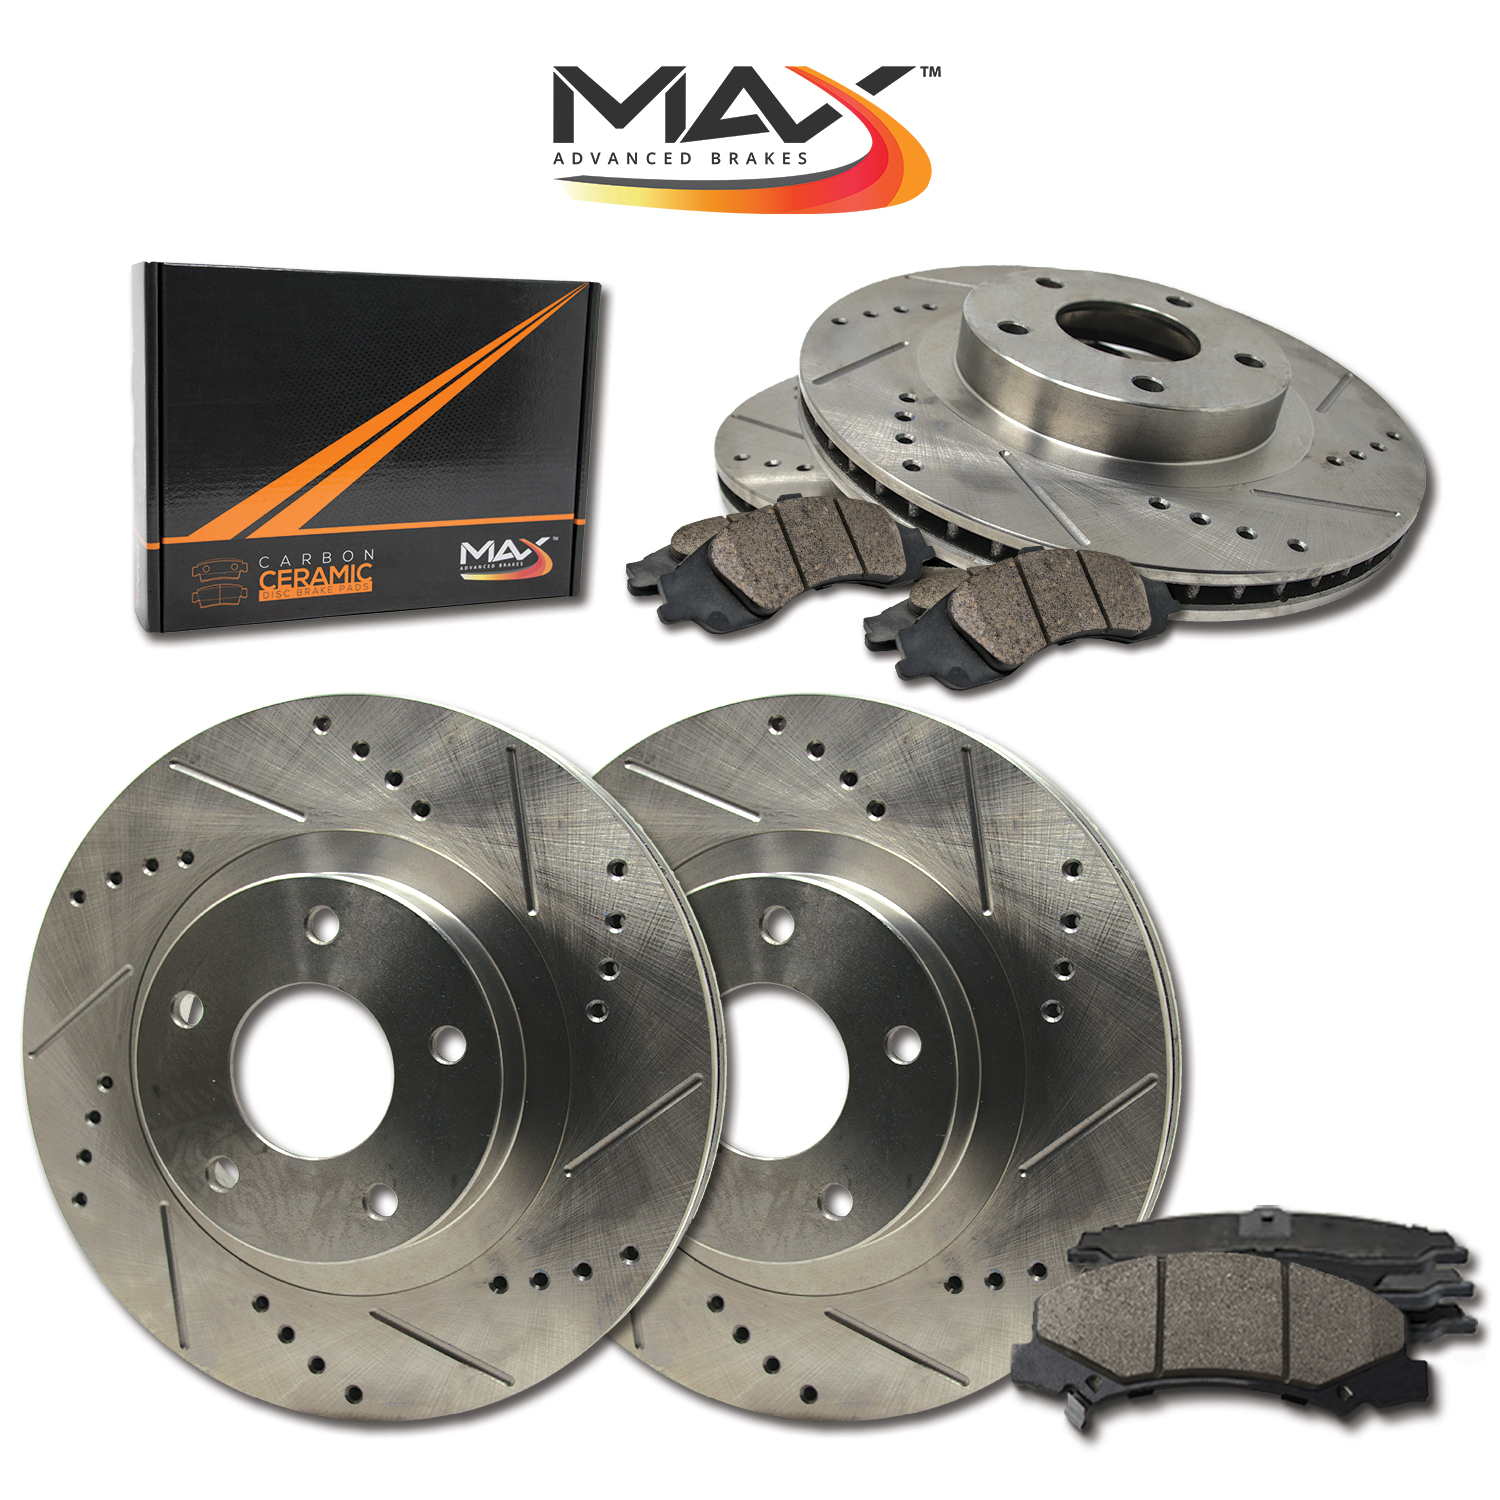 E-Coated Slotted Drilled Rotors + Metallic Pads Fits: 2010 10 2011 11 2012 12 2013 13 Cadillac SRX TA155883 Max Brakes Front /& Rear Elite Brake Kit